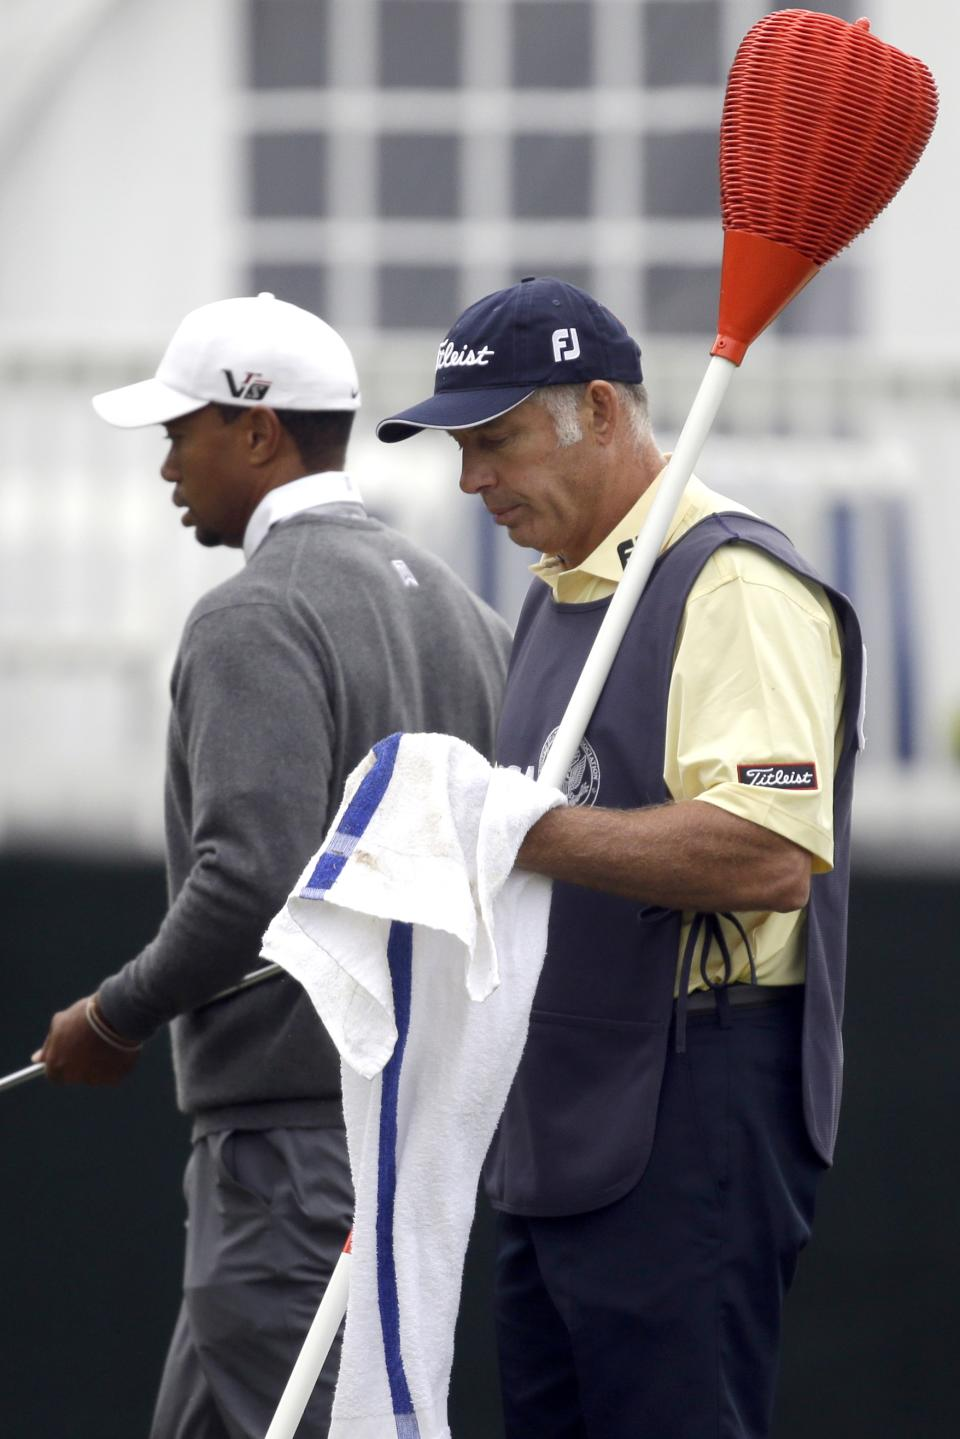 Caddie Steve Williams, right, and Tiger Woods walk on the 13th green during the first round of the U.S. Open golf tournament at Merion Golf Club, Friday, June 14, 2013, in Ardmore, Pa. (AP Photo/Morry Gash)